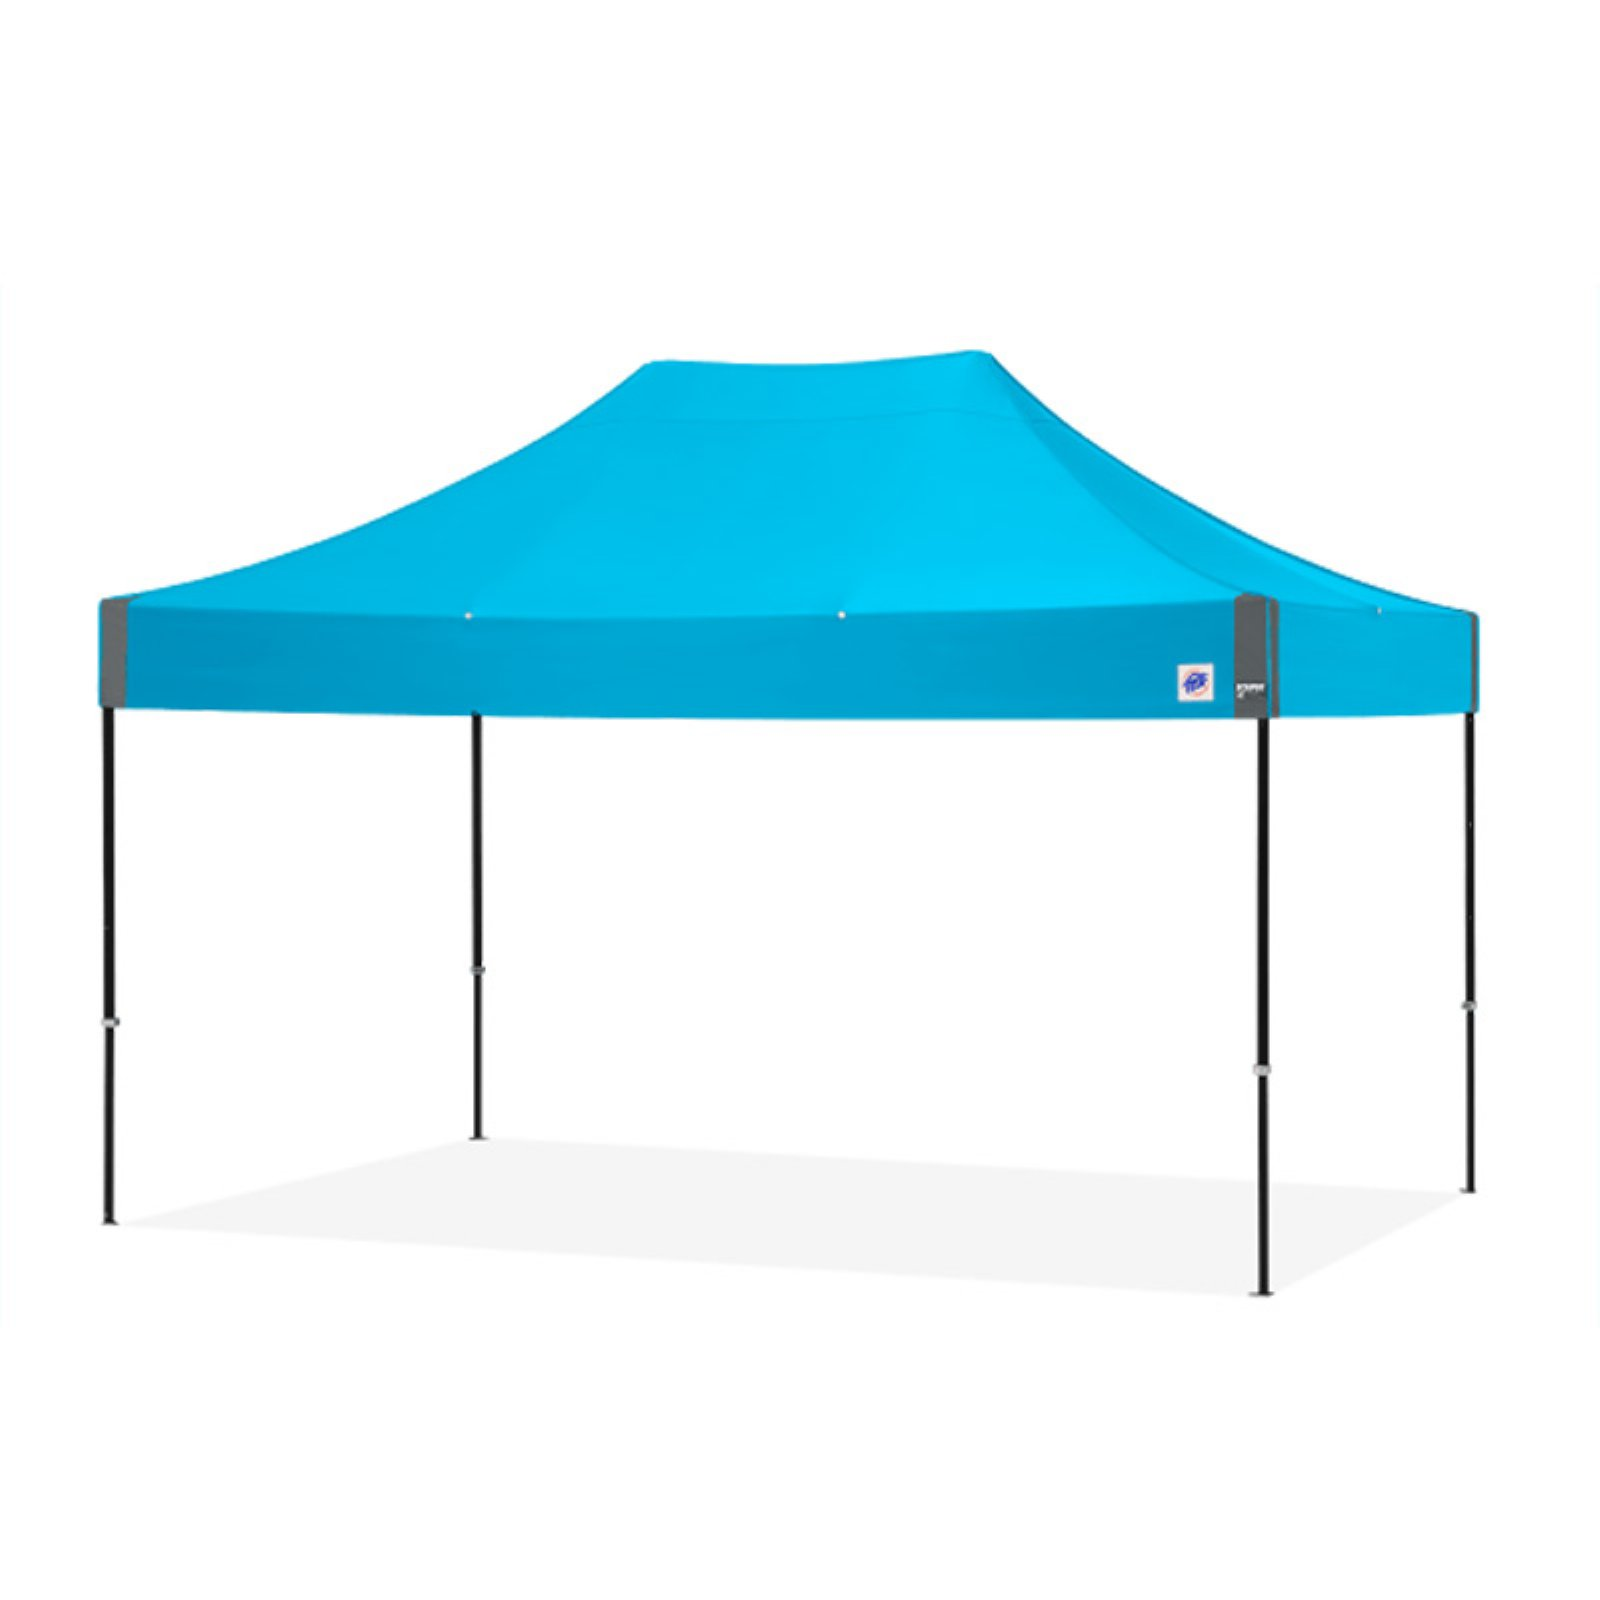 E-Z UP Eclipse 10 x 15 ft. Canopy with Aluminum Frame